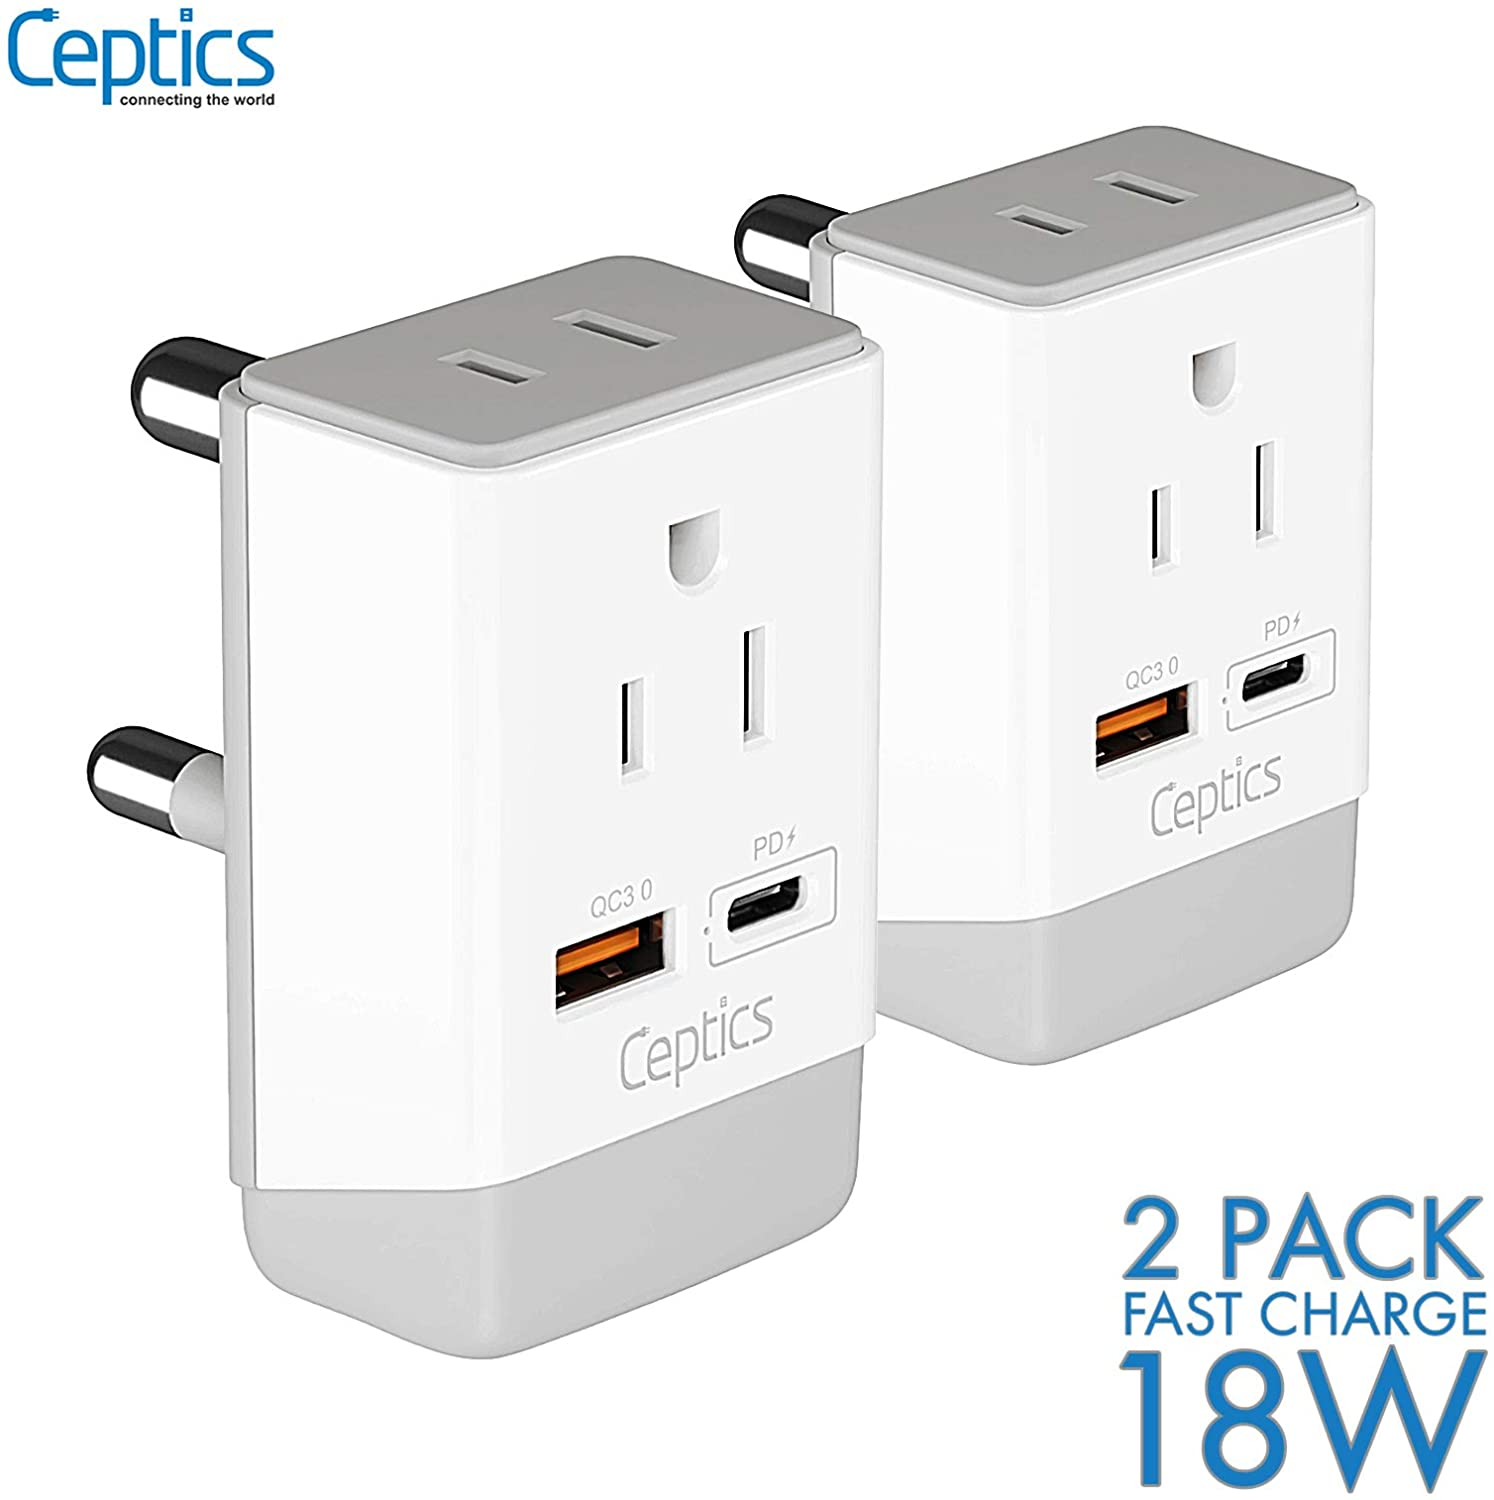 South Africa Travel 2 Pack Plug Adapter QC 3.0 & PD by Ceptics, Safe Dual USB & USB-C - 2 USA Socket Compact & Powerful - Use in S. Africa Botswana - Type M AP-10L - Fast Charging